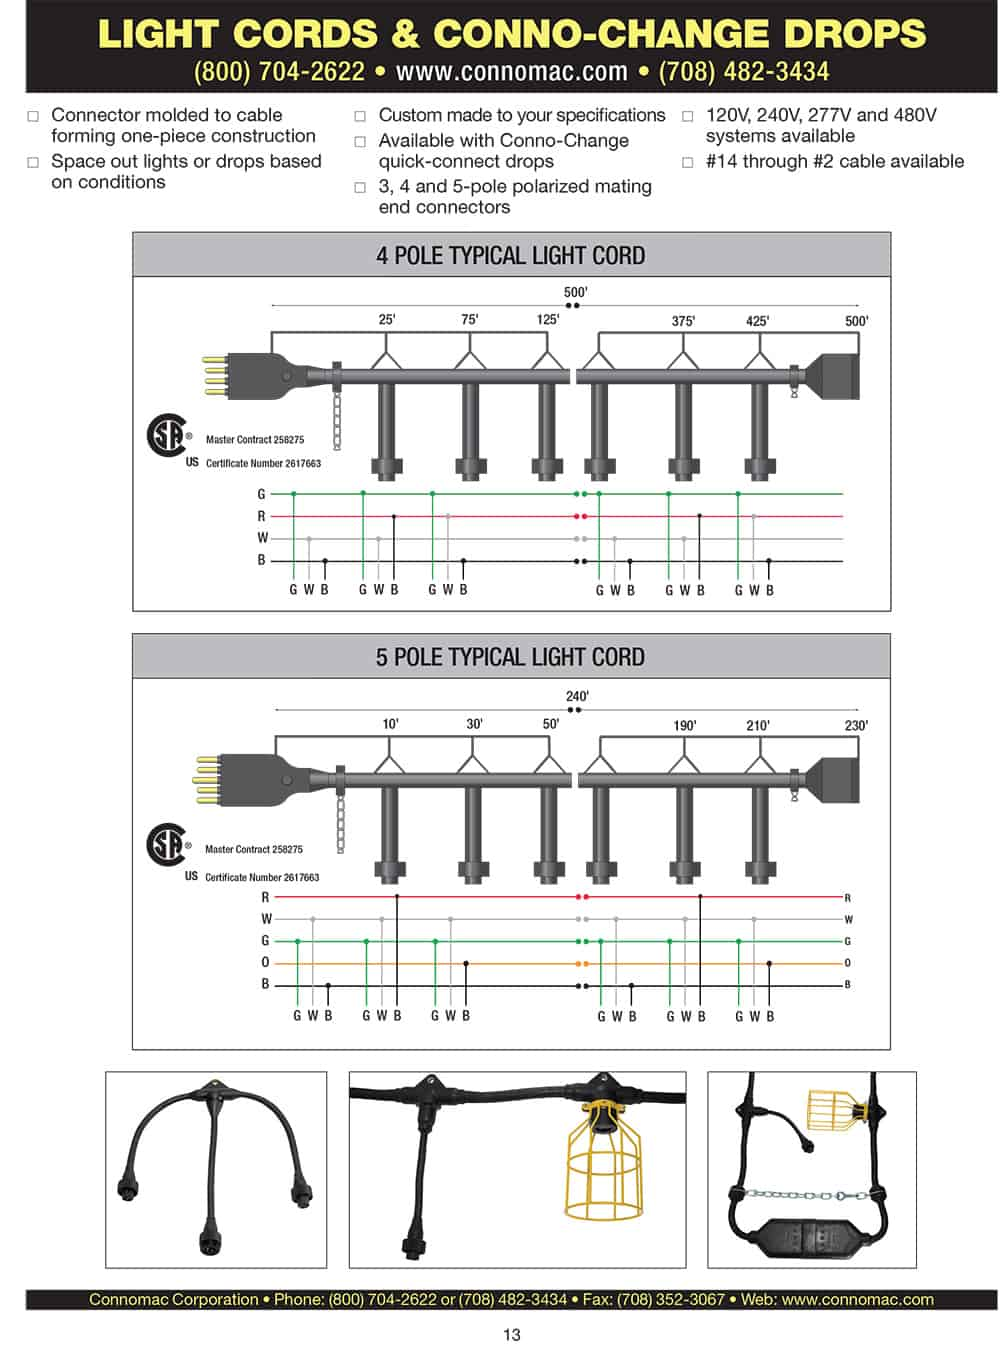 light cord & conno change drops spec sheet